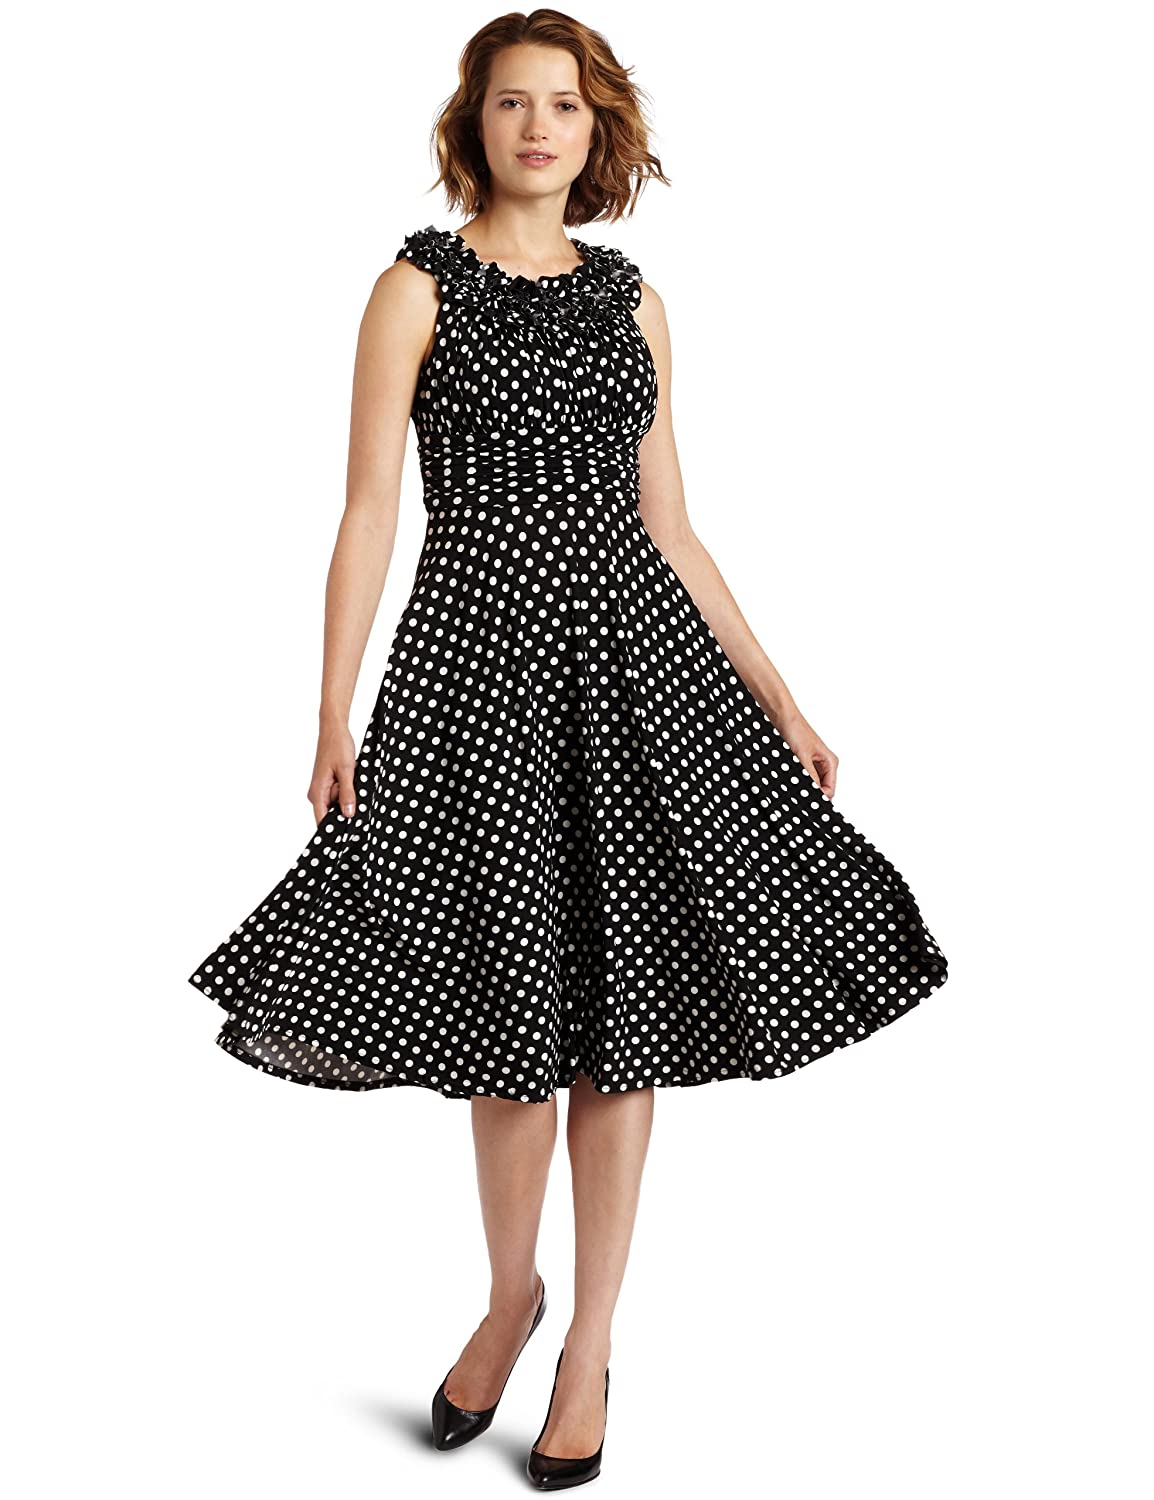 Check our latest styles of Dresses such as Polka Dots at REVOLVE with free day shipping and returns, 30 day price match guarantee.